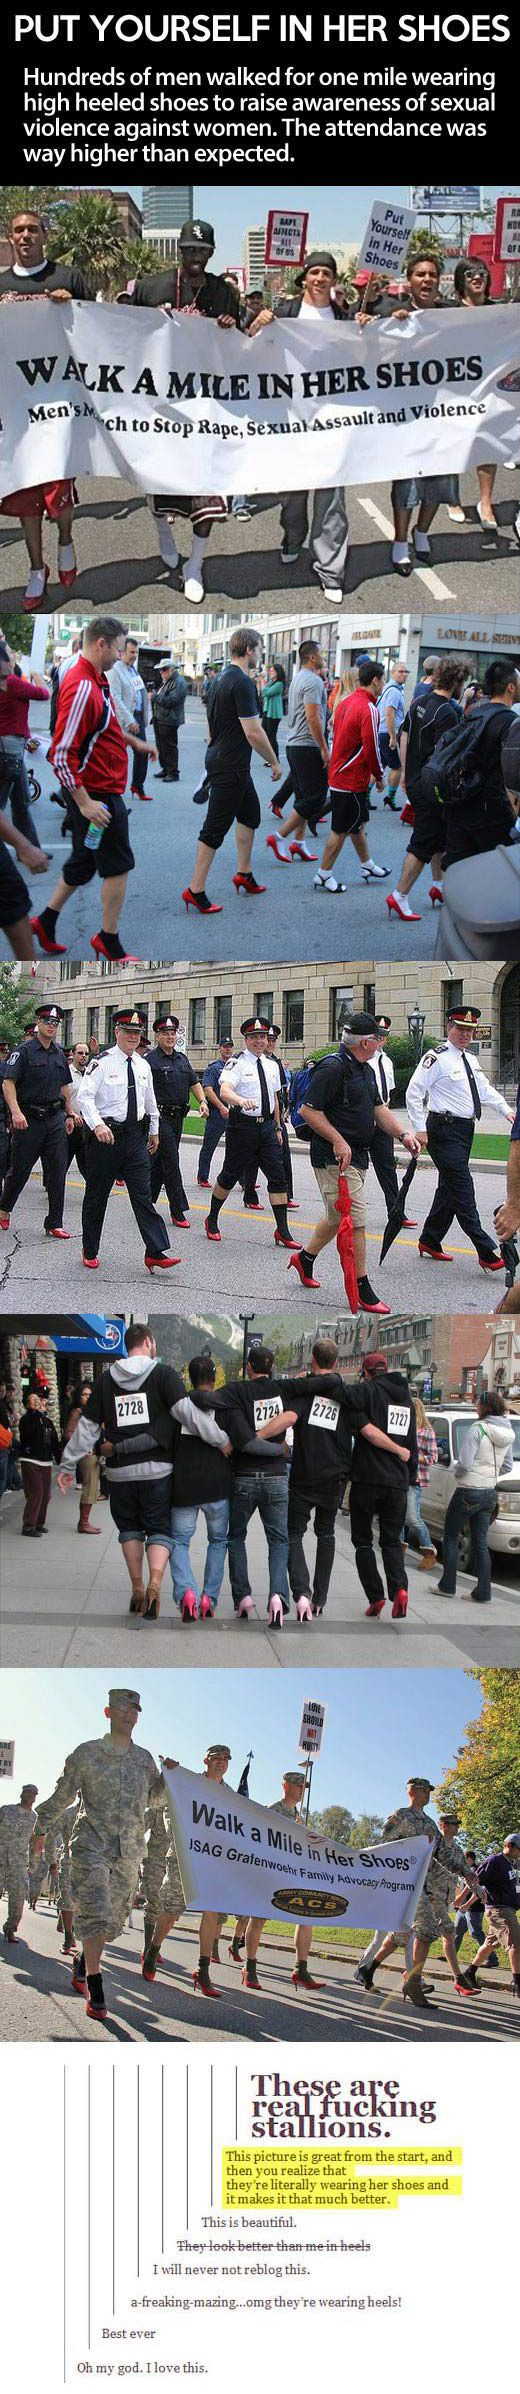 Walking a mile in her shoes. Love it!